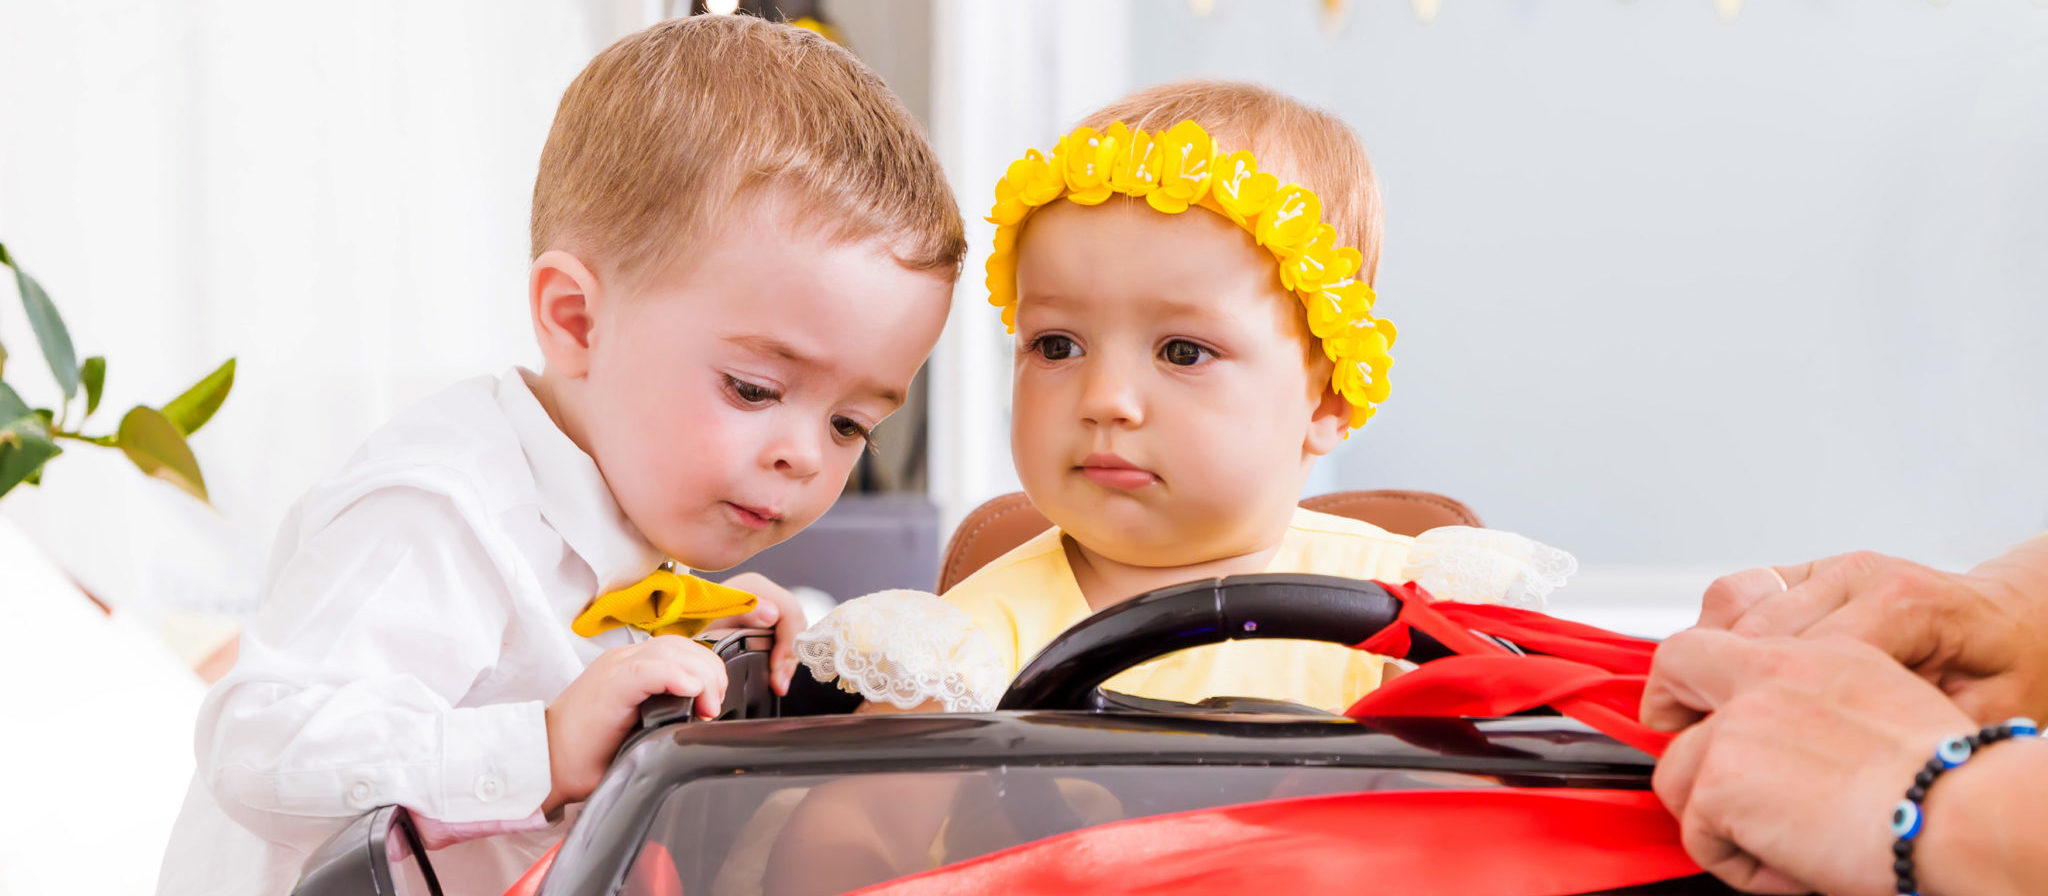 Ride on toys offer children the opportunity to share with others and develop communication skills.